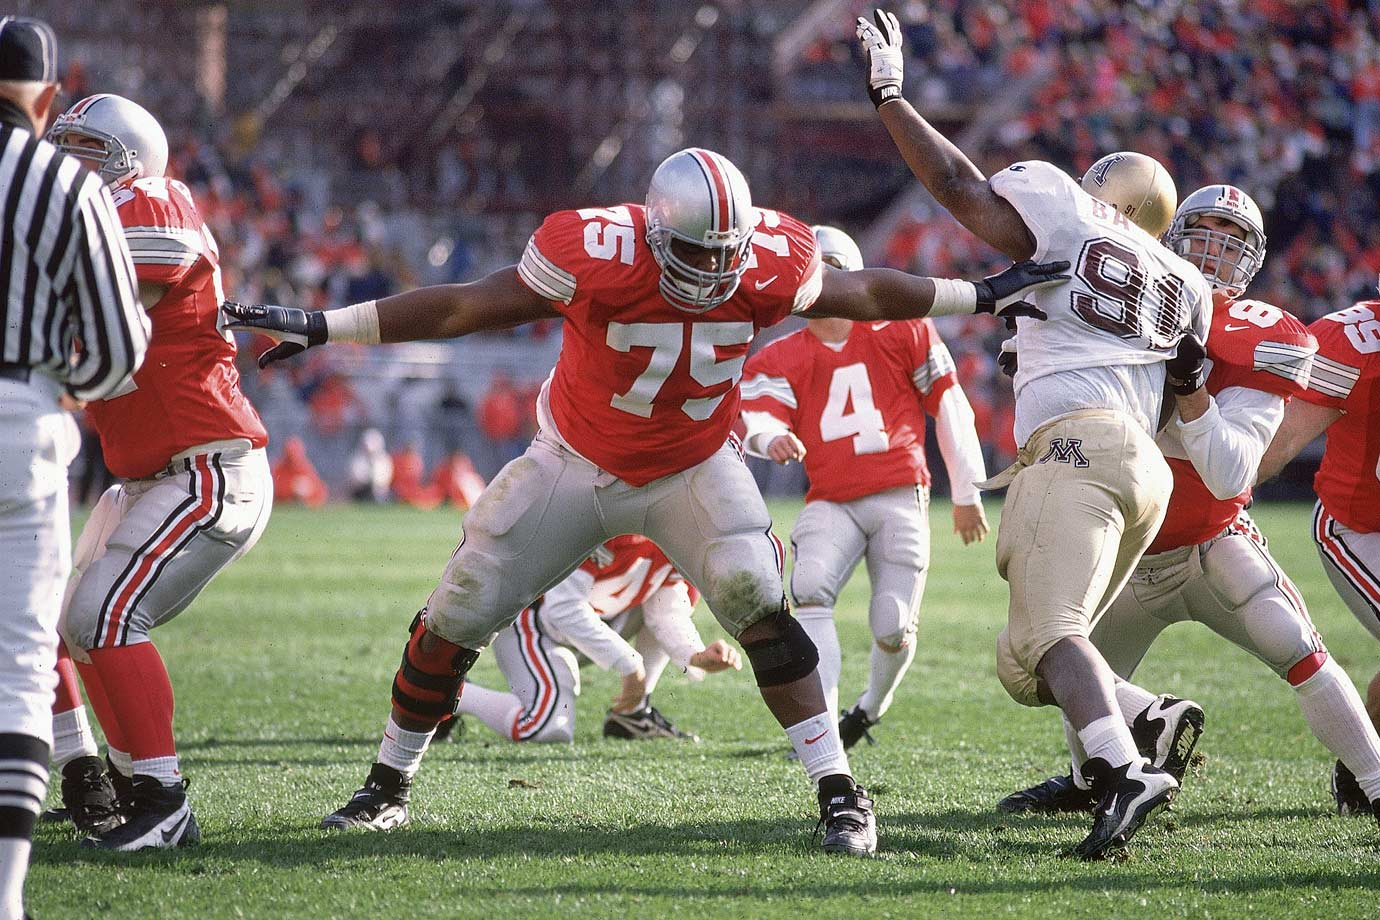 Pace's massive size, speed, strength and agility made him the ultimate lineman. He won the Lombardi Award in 1995 and '96 and the Outland in 1996. He finished fourth in the 1996 Heisman balloting, the best finish for a lineman since OSU's John Hicks was second in 1973. — Runner-up: Joe Greene, DE, North Texas State (1966-68)